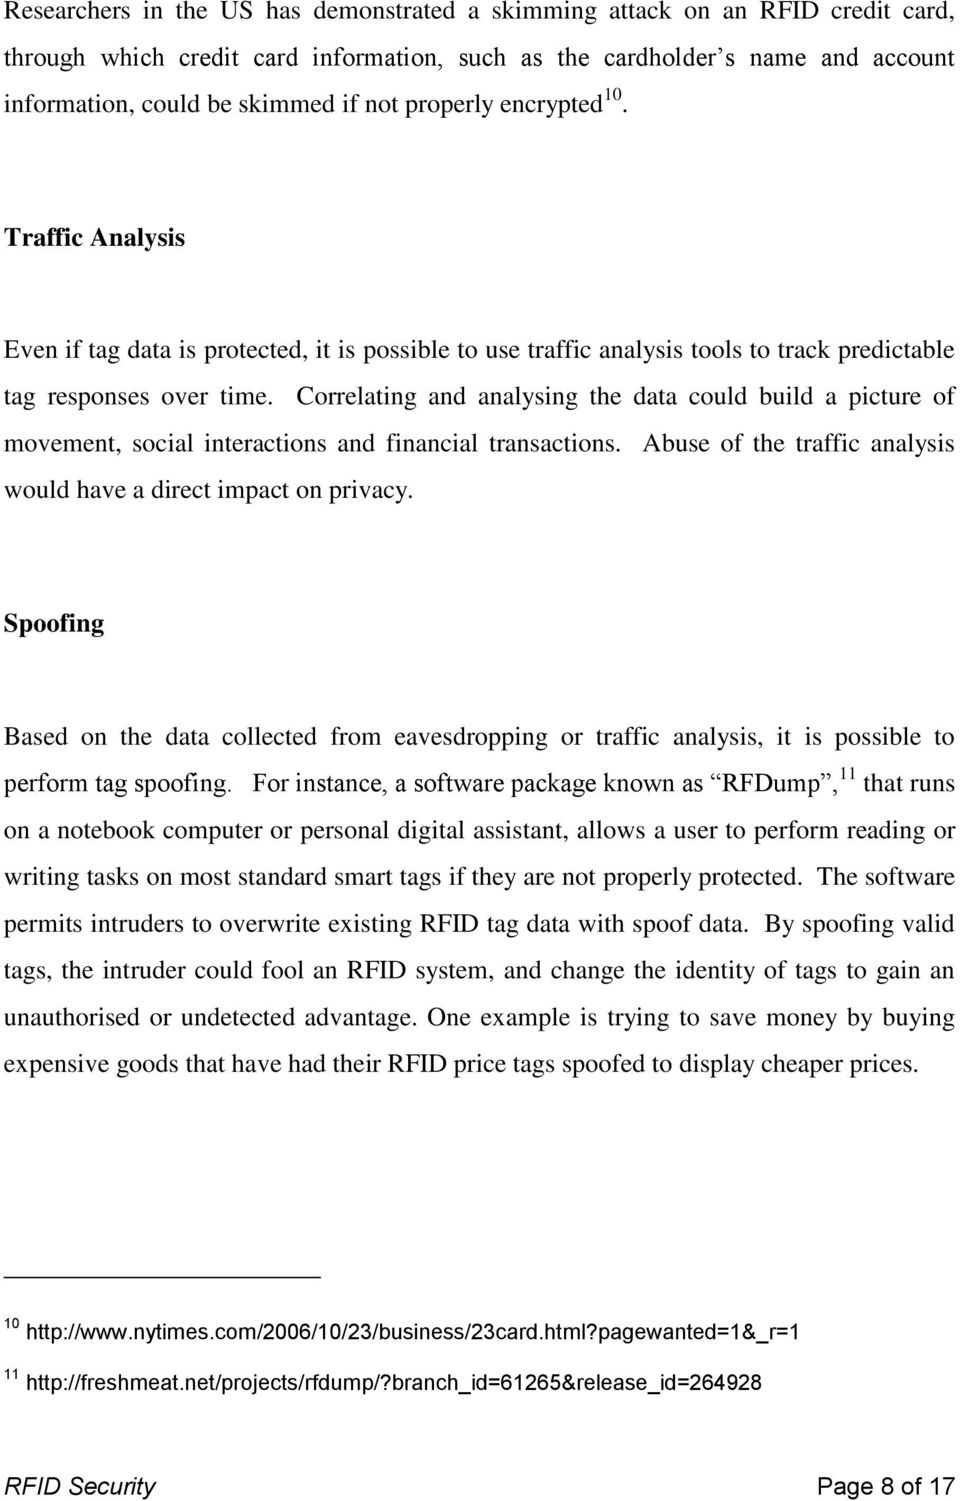 Correlating and analysing the data could build a picture of movement, social interactions and financial transactions. Abuse of the traffic analysis would have a direct impact on privacy.